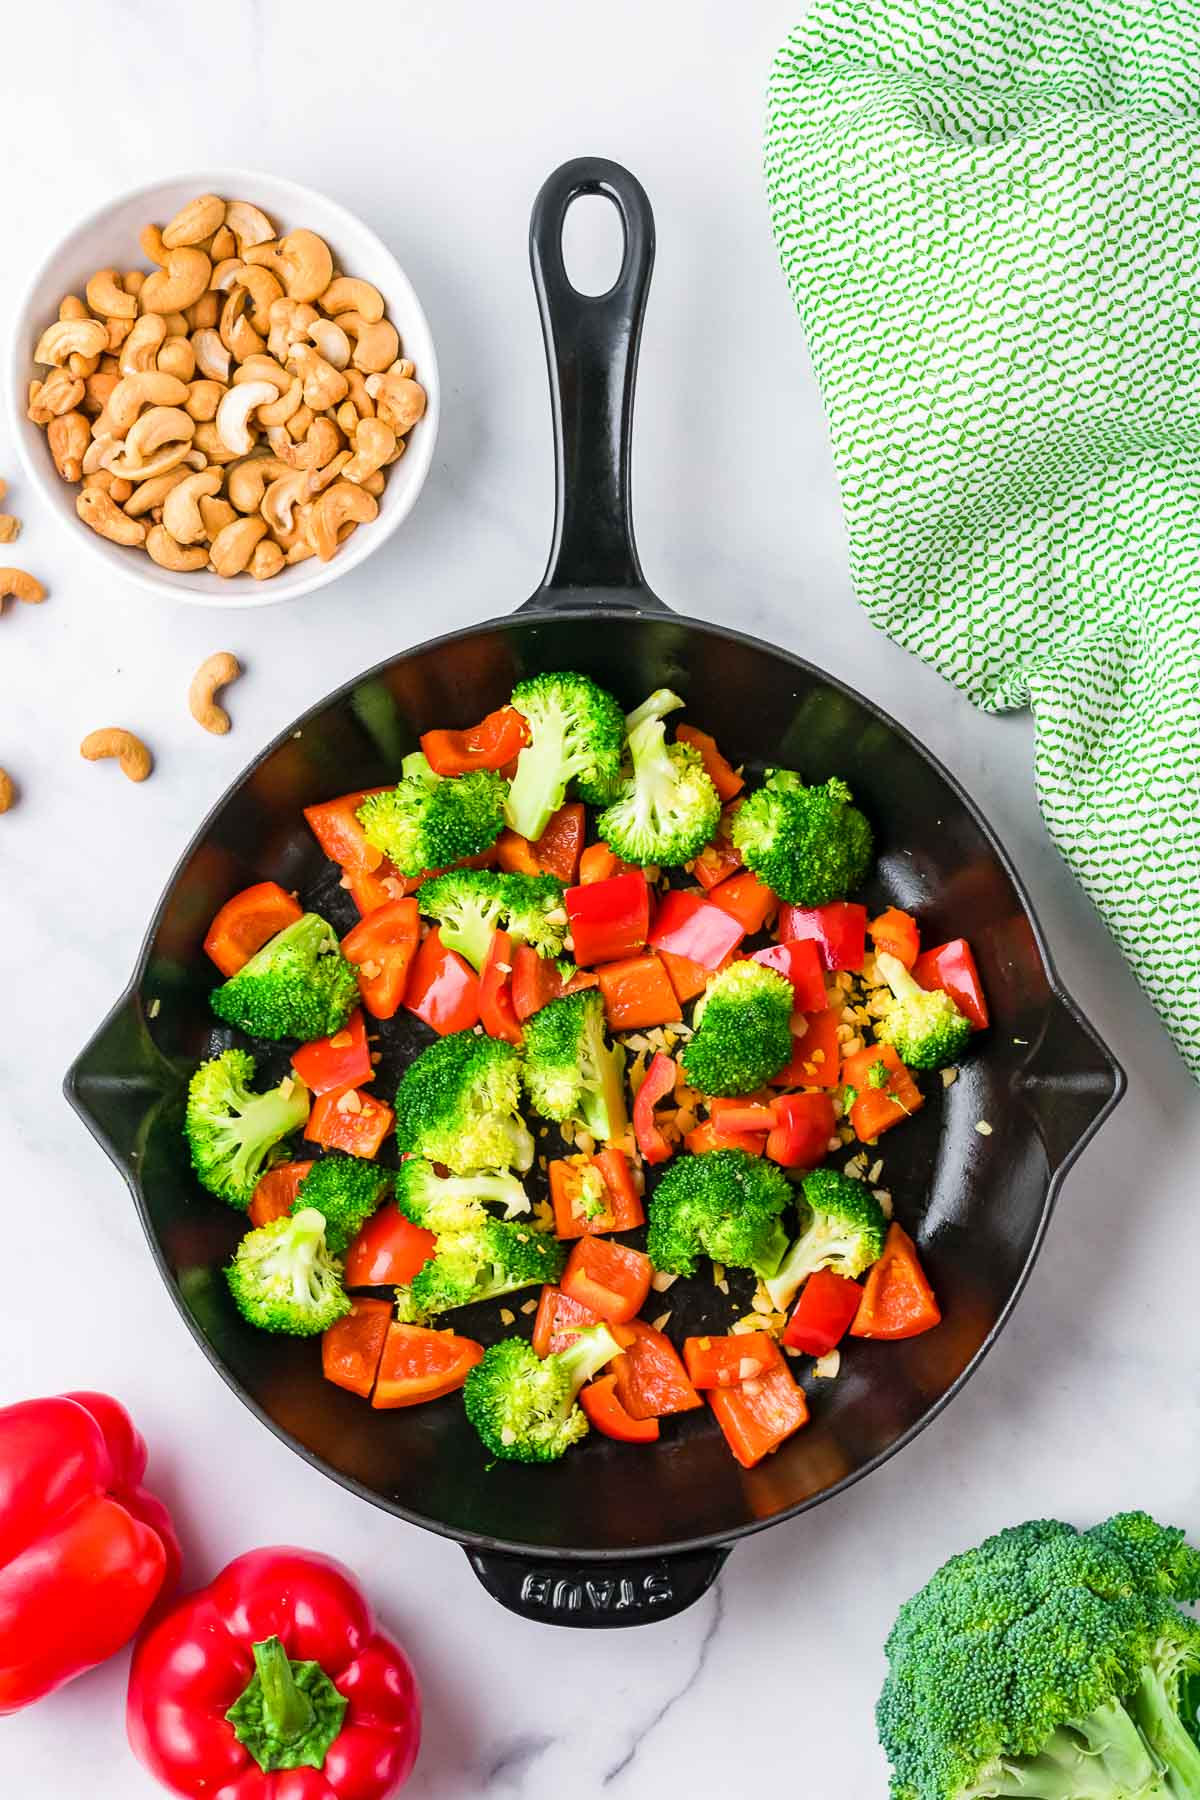 red bell pepper and broccoli in a skillet